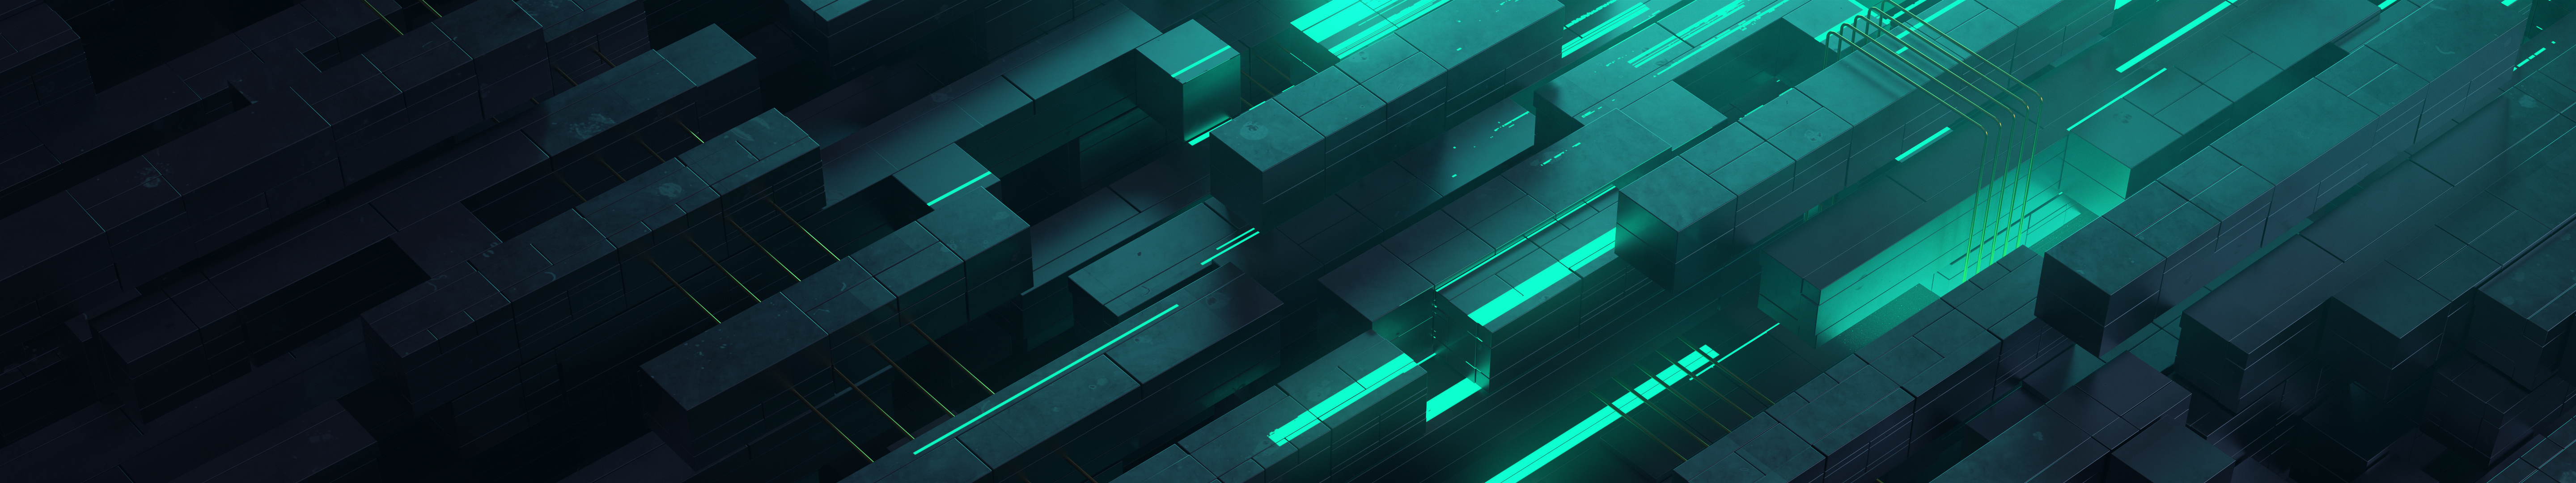 General 5760x1080 3D Abstract abstract neon glow teal digital art triple screen